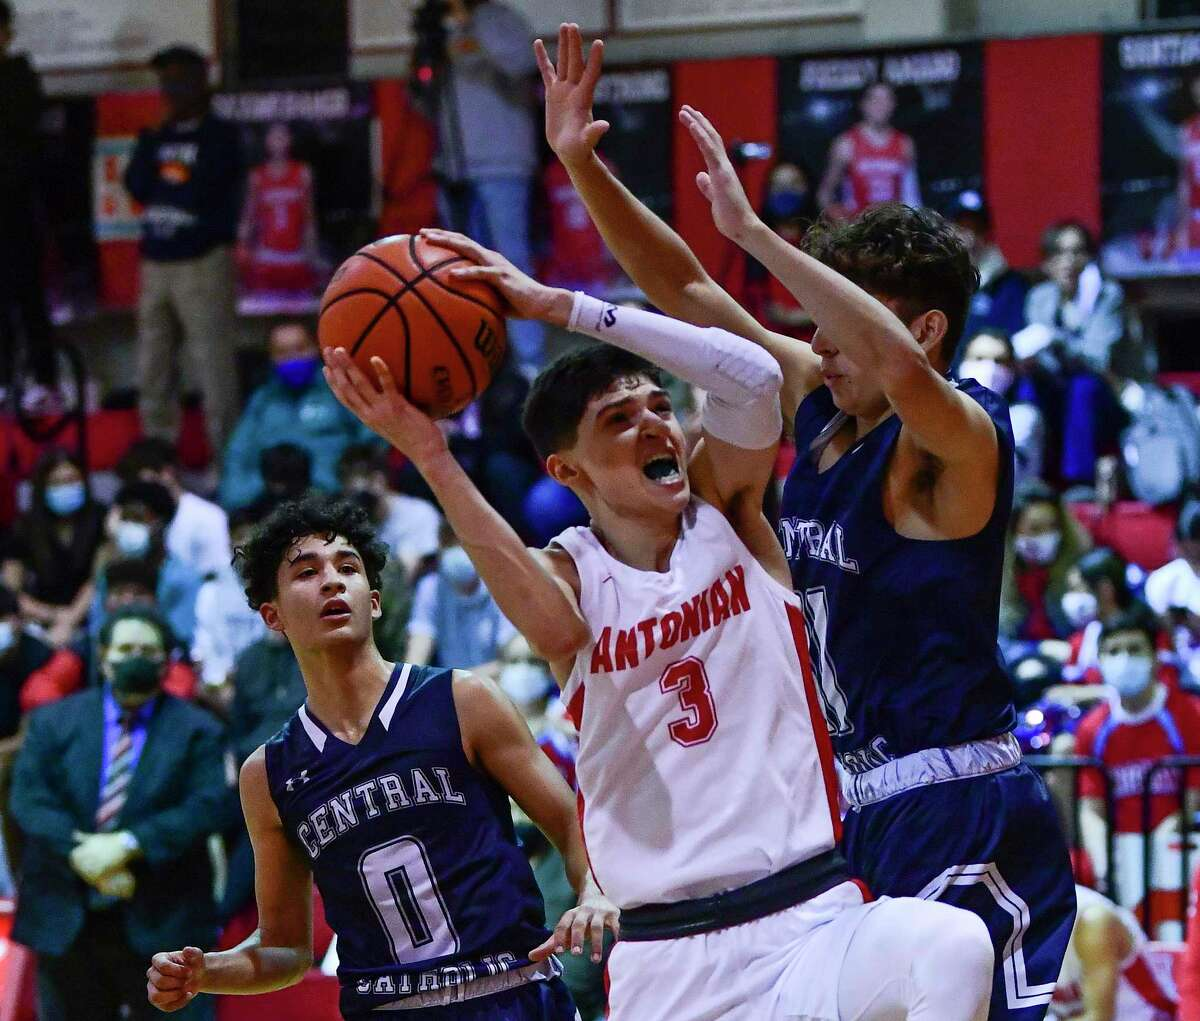 Antonian's Gavino Ramos scores against the Central Catholic defense during high school basketball action on Friday night, Feb. 5, 2021.